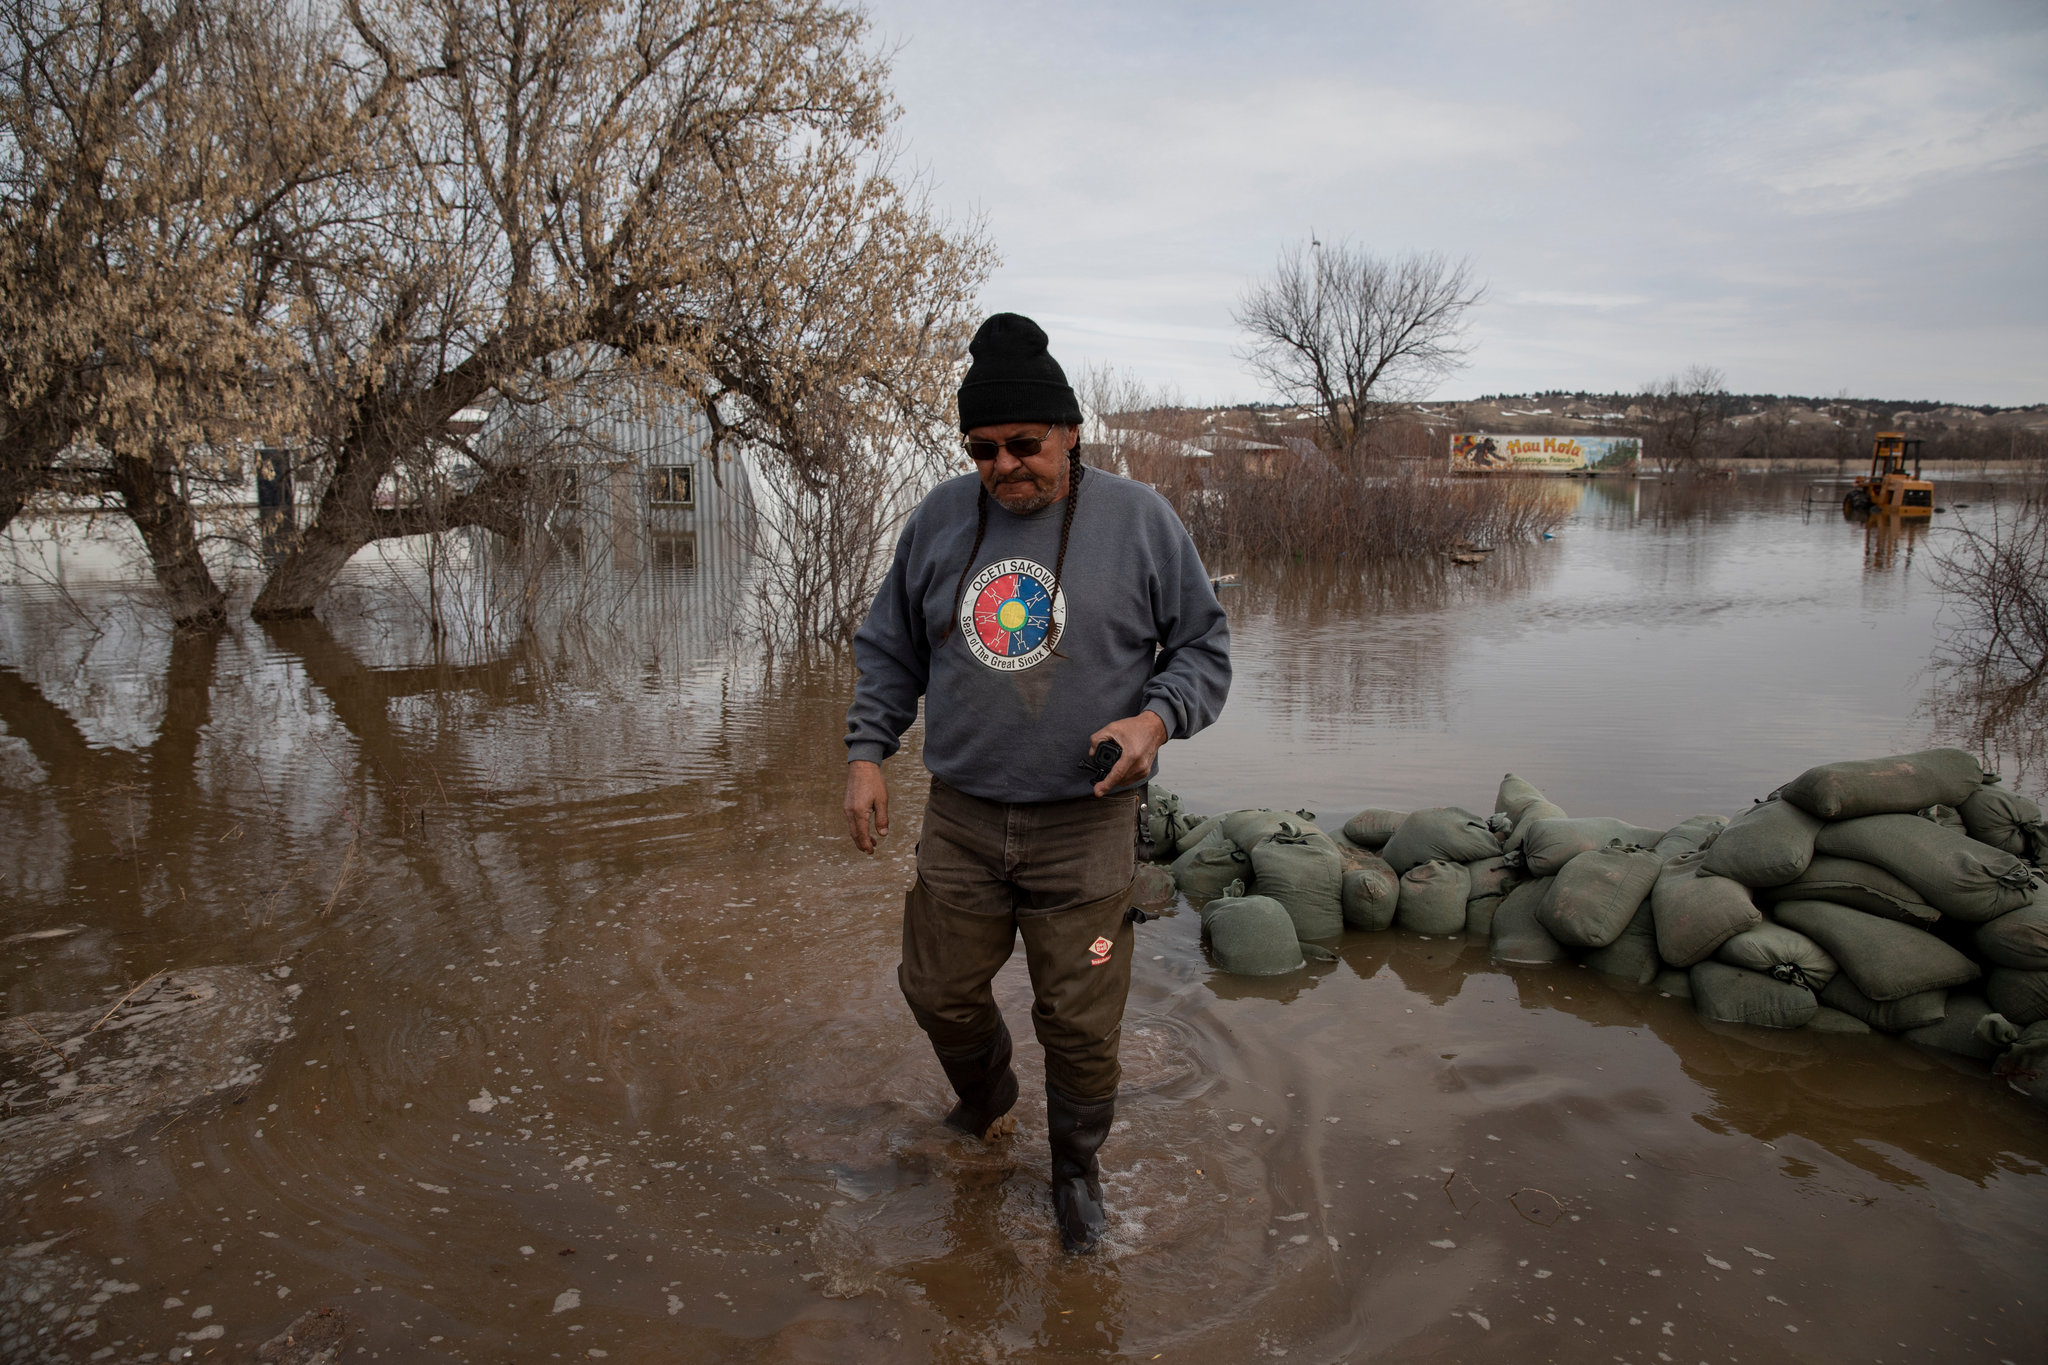 The rising floodwaters stopped just sort of the home where Henry Red Cloud and his family rode out the storm, but other buildings on their property including their solar power business were inundated. Credit: Kristina Barker for The New York Times